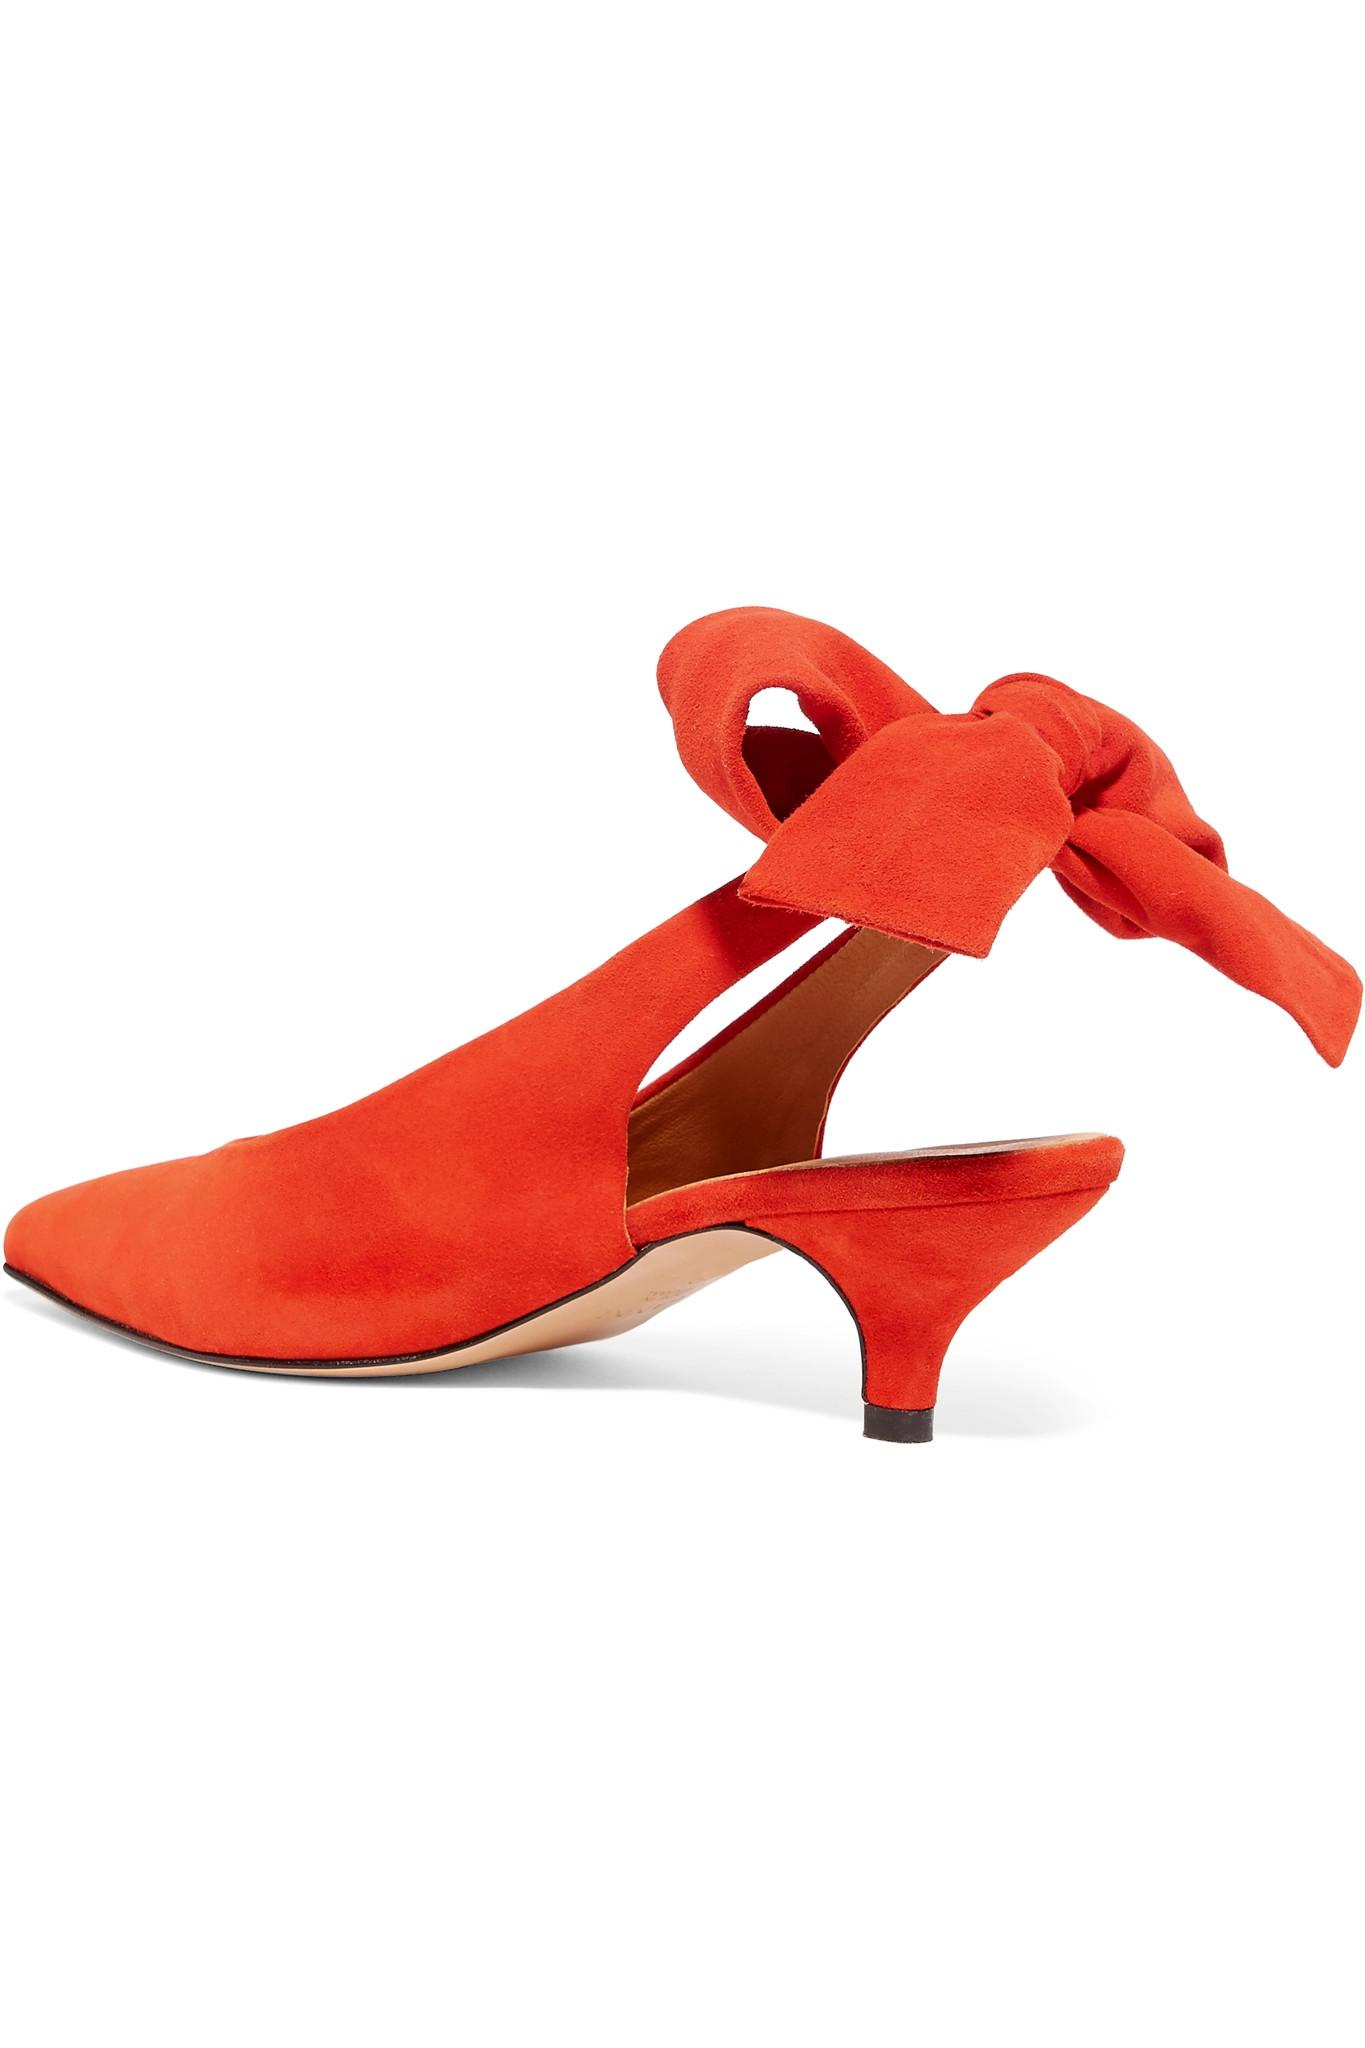 6b3a7879652 Lyst - Ganni Suede Slingback Pumps in Red